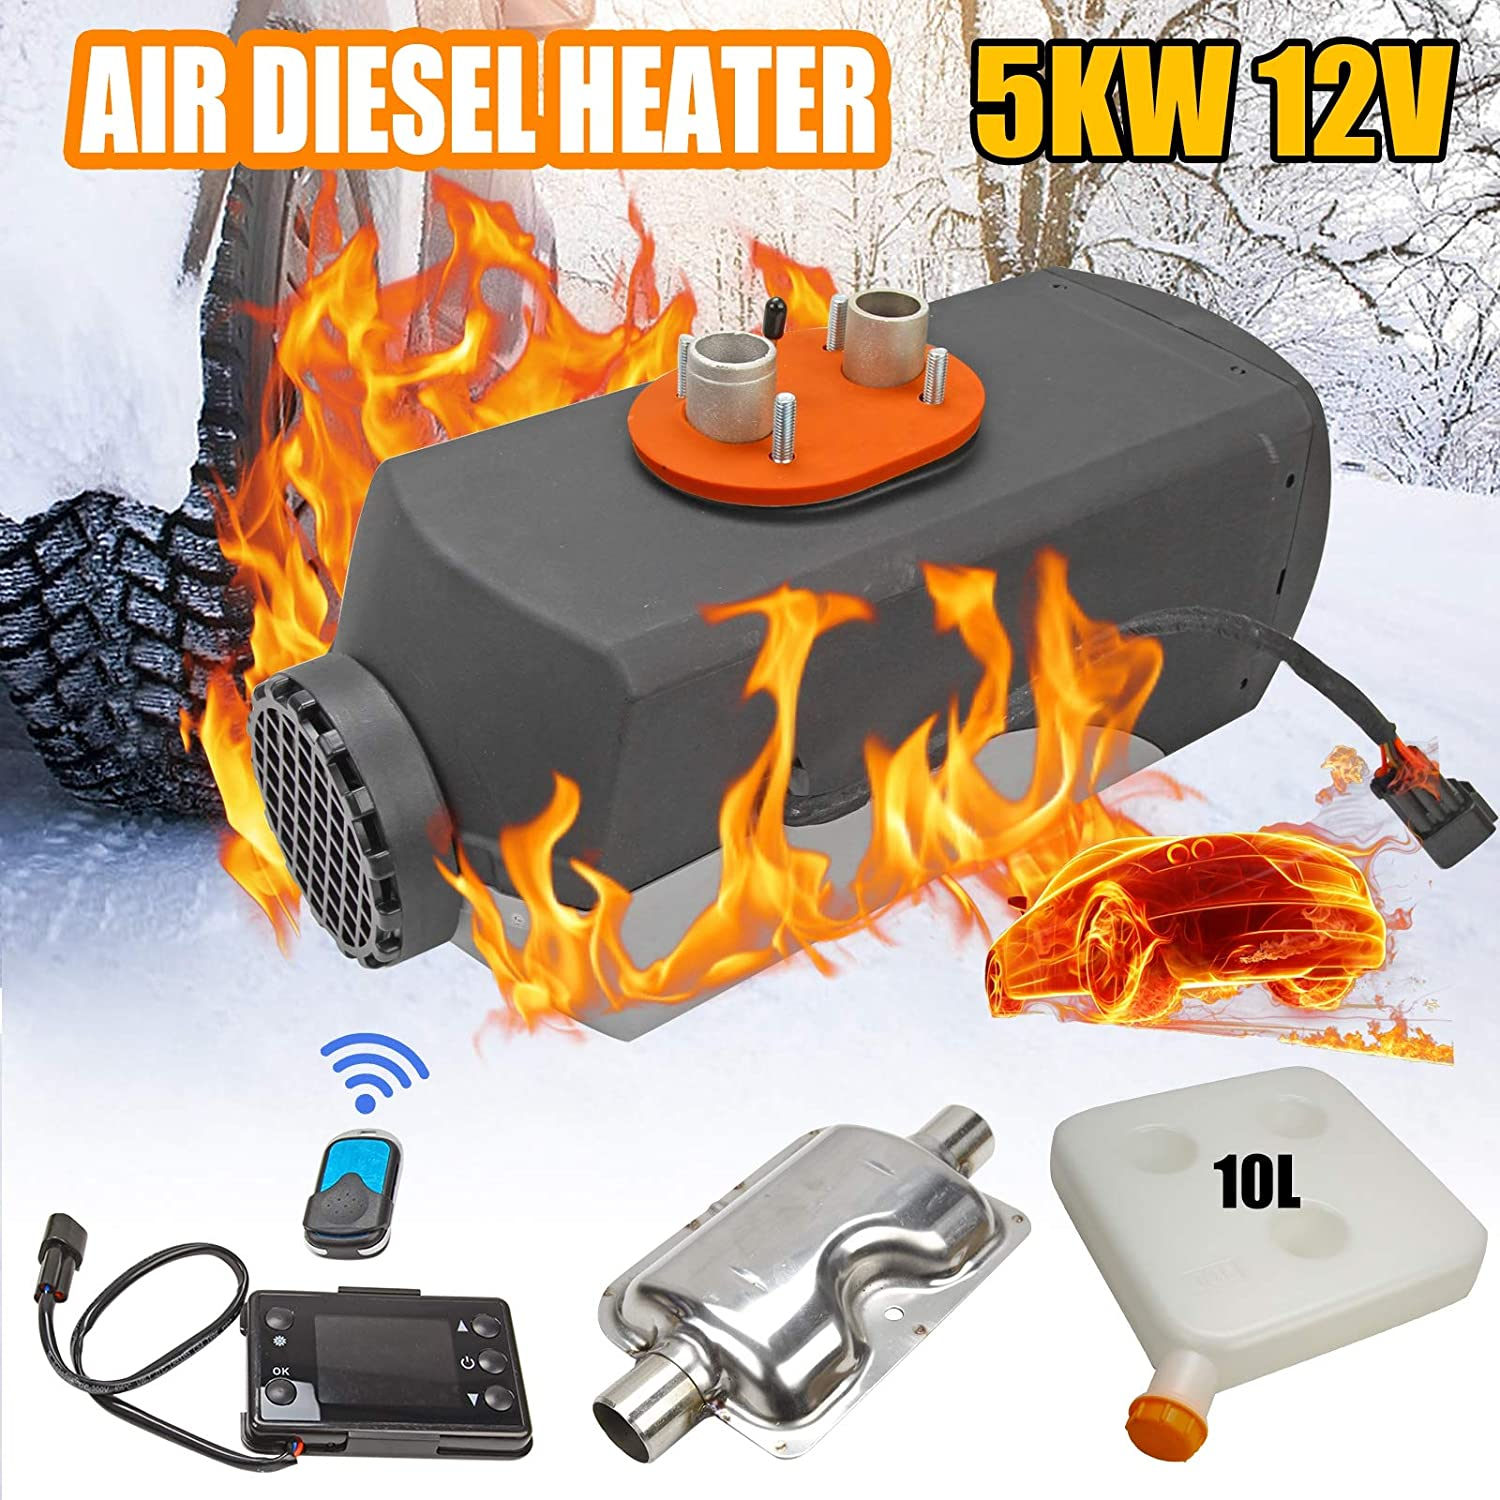 Superfastracing 2KW 12V LCD Air diesel Heater for Motor-home Truck Bus Car